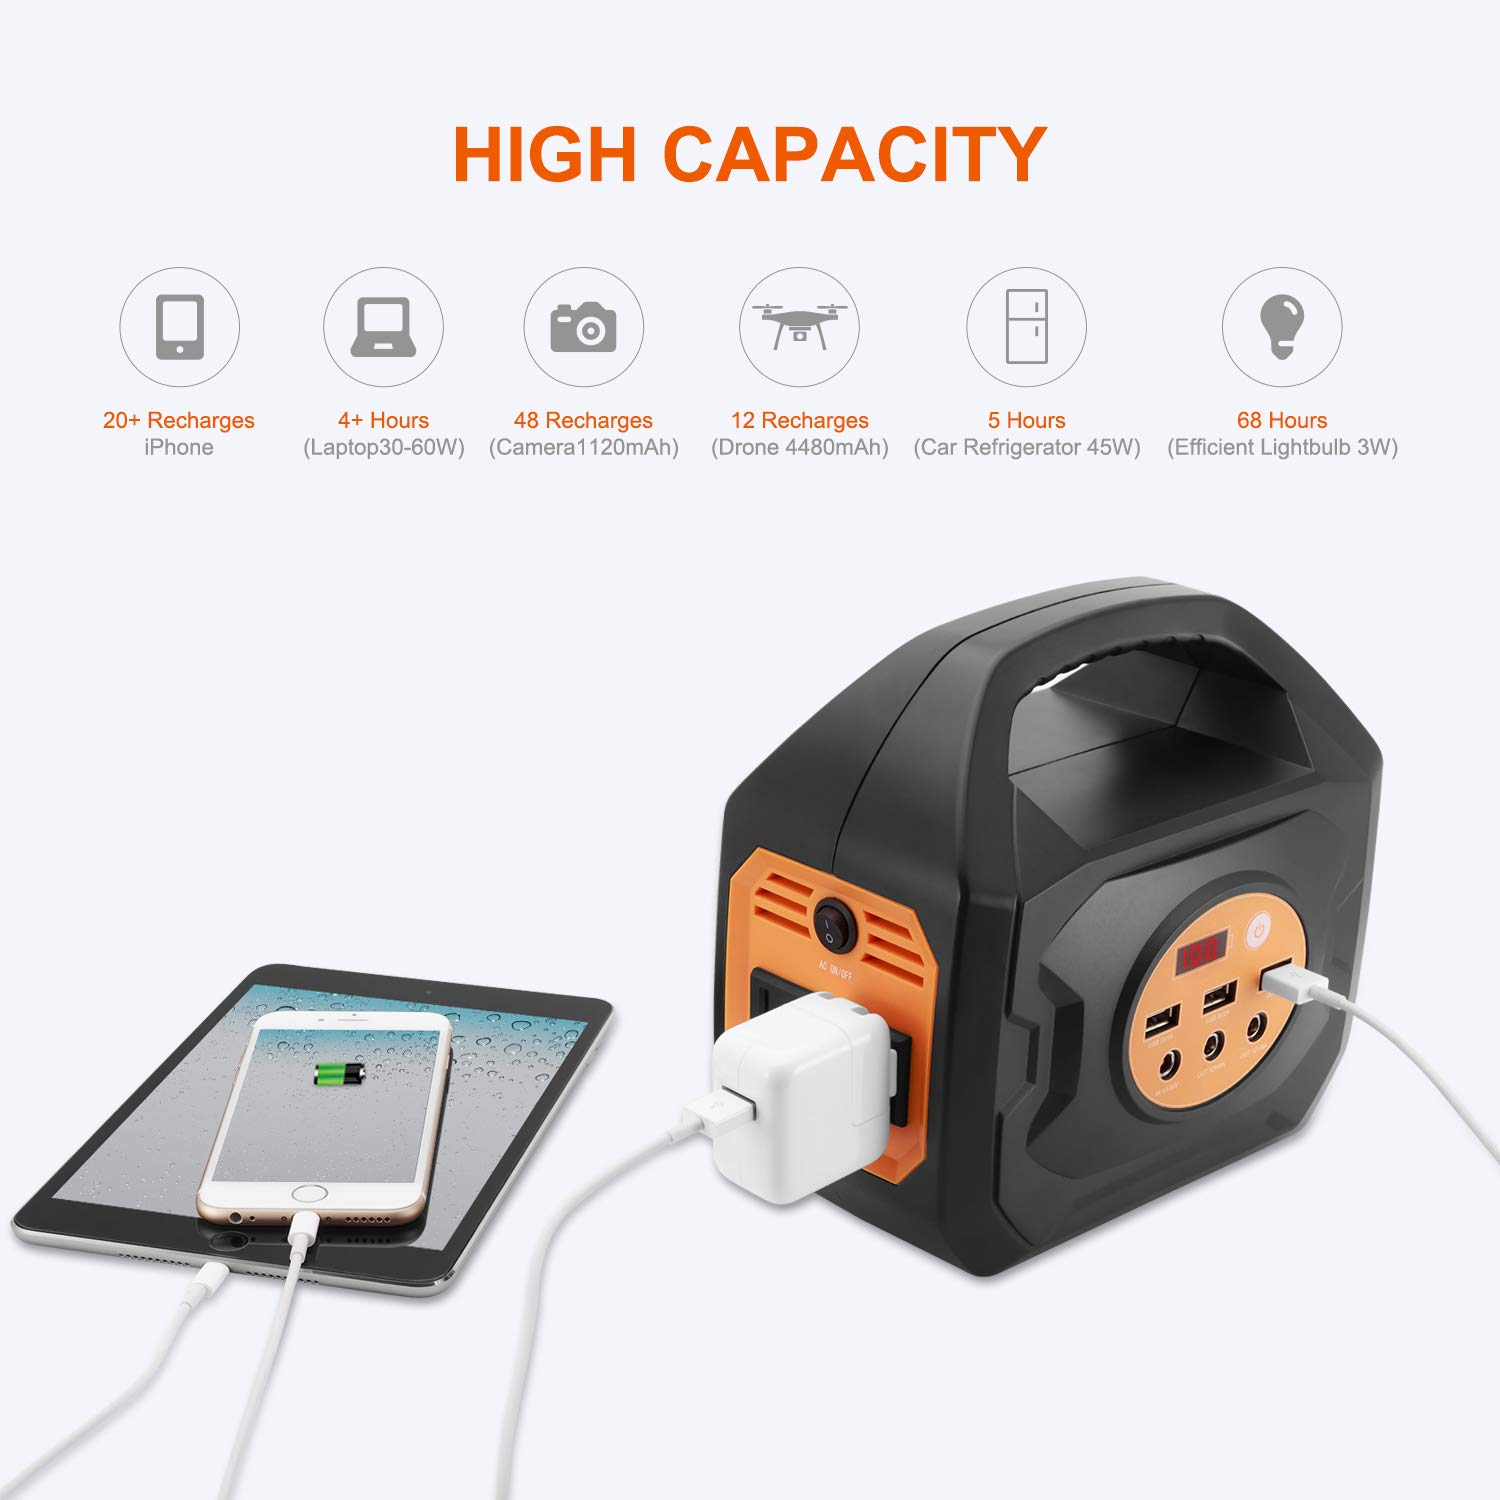 Aeiusny 250W Portable Power Station, 200Wh Solar Generators, Lithium Battery Backup Power Supply with 110V Pure Sinewave AC Output 12VDC Output QC3.0 USB Ports for Camping Trip, Fishing, Emergency